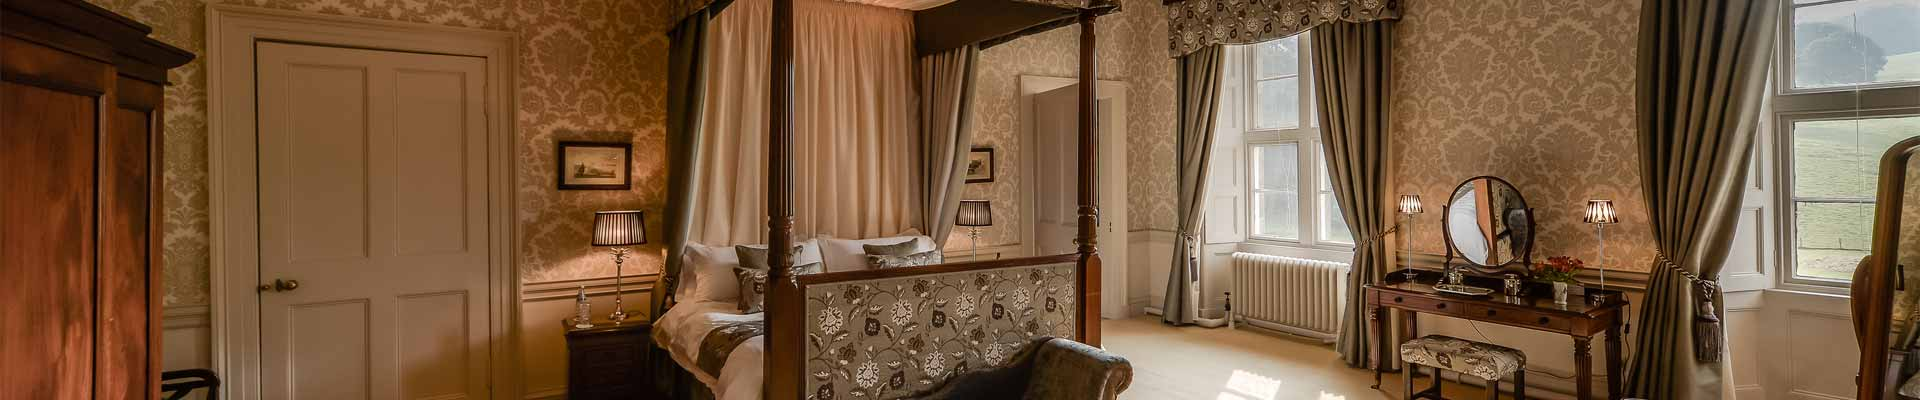 Photo of one of the bedroom suites at Lachlan Castle